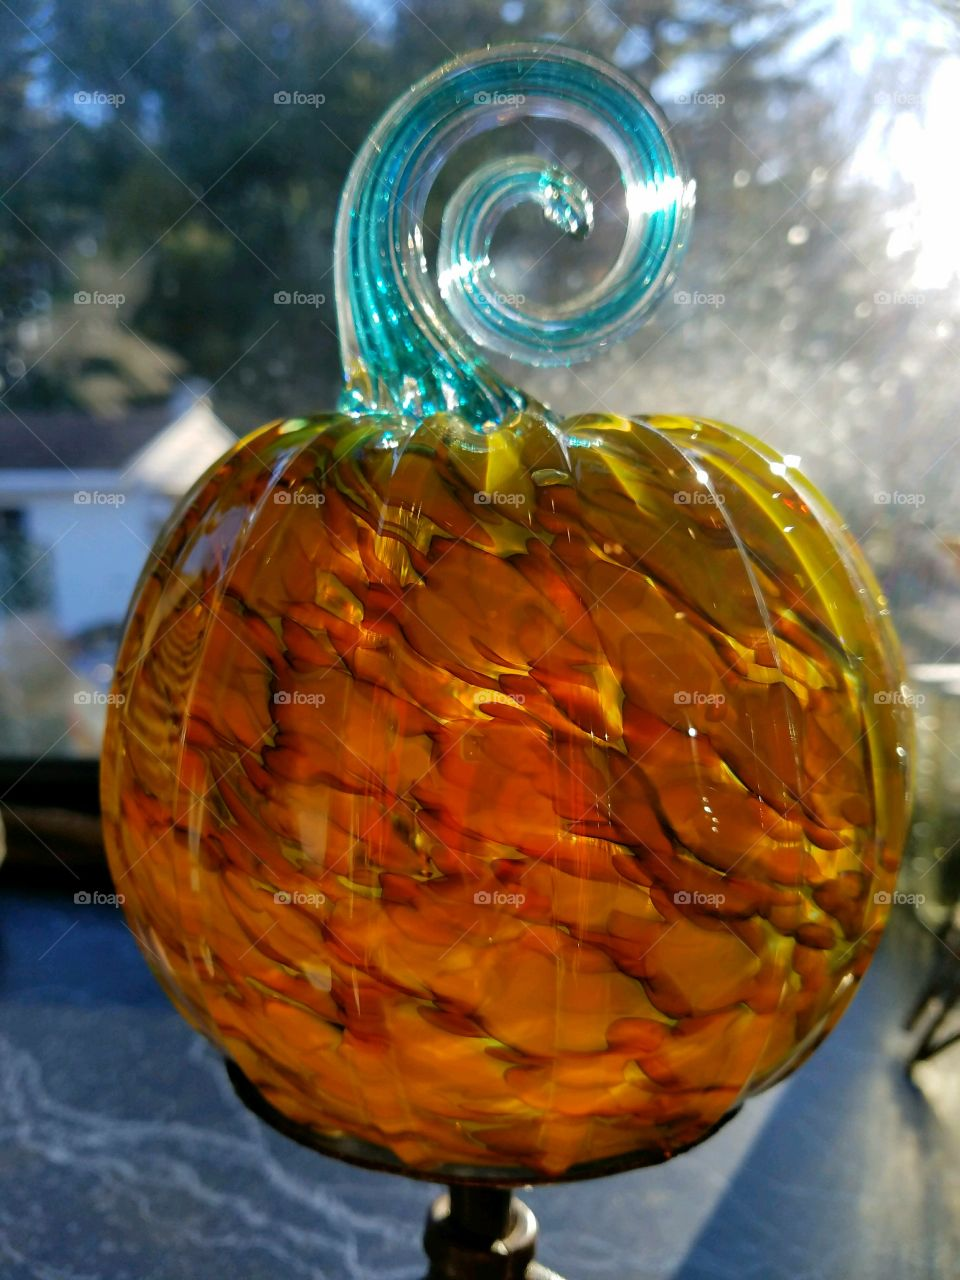 Handblown glass pumpkin seen with sun shining through, showing all colors of glass used. Stem is blue and spiral shape.